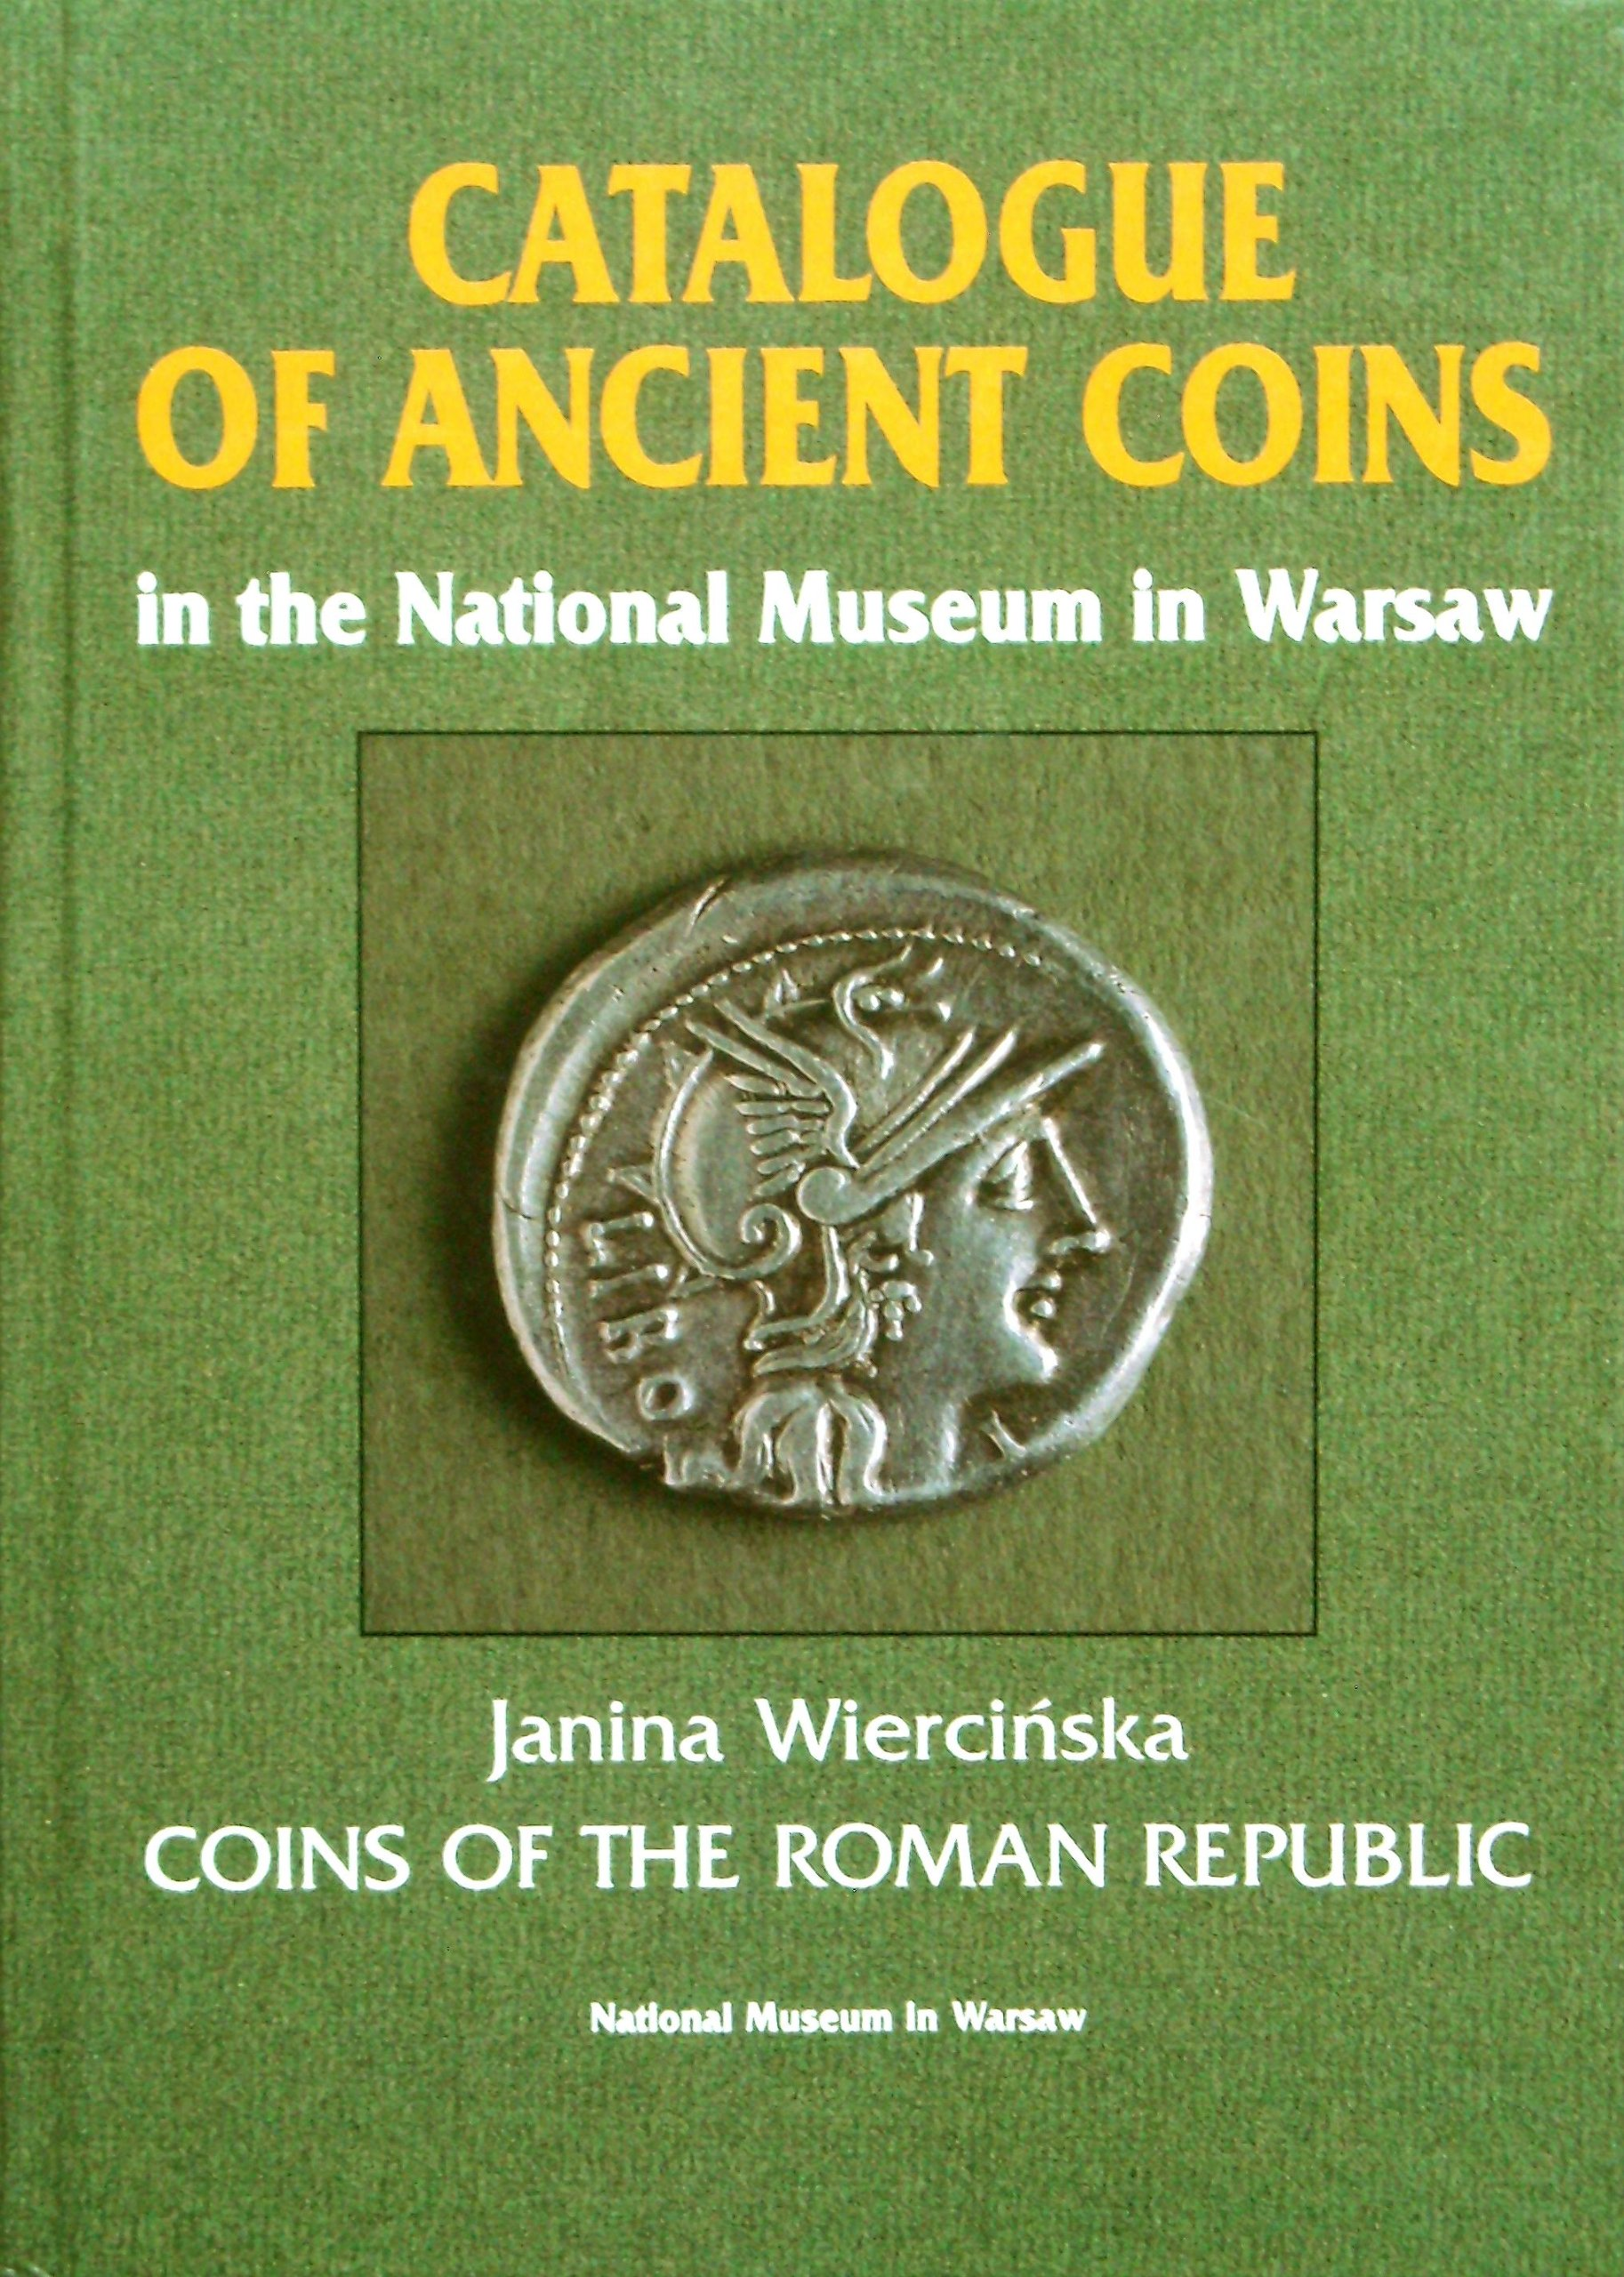 Coins of the Roman Republic: Catalogue of Ancient Coins in the National Museum in Warsaw